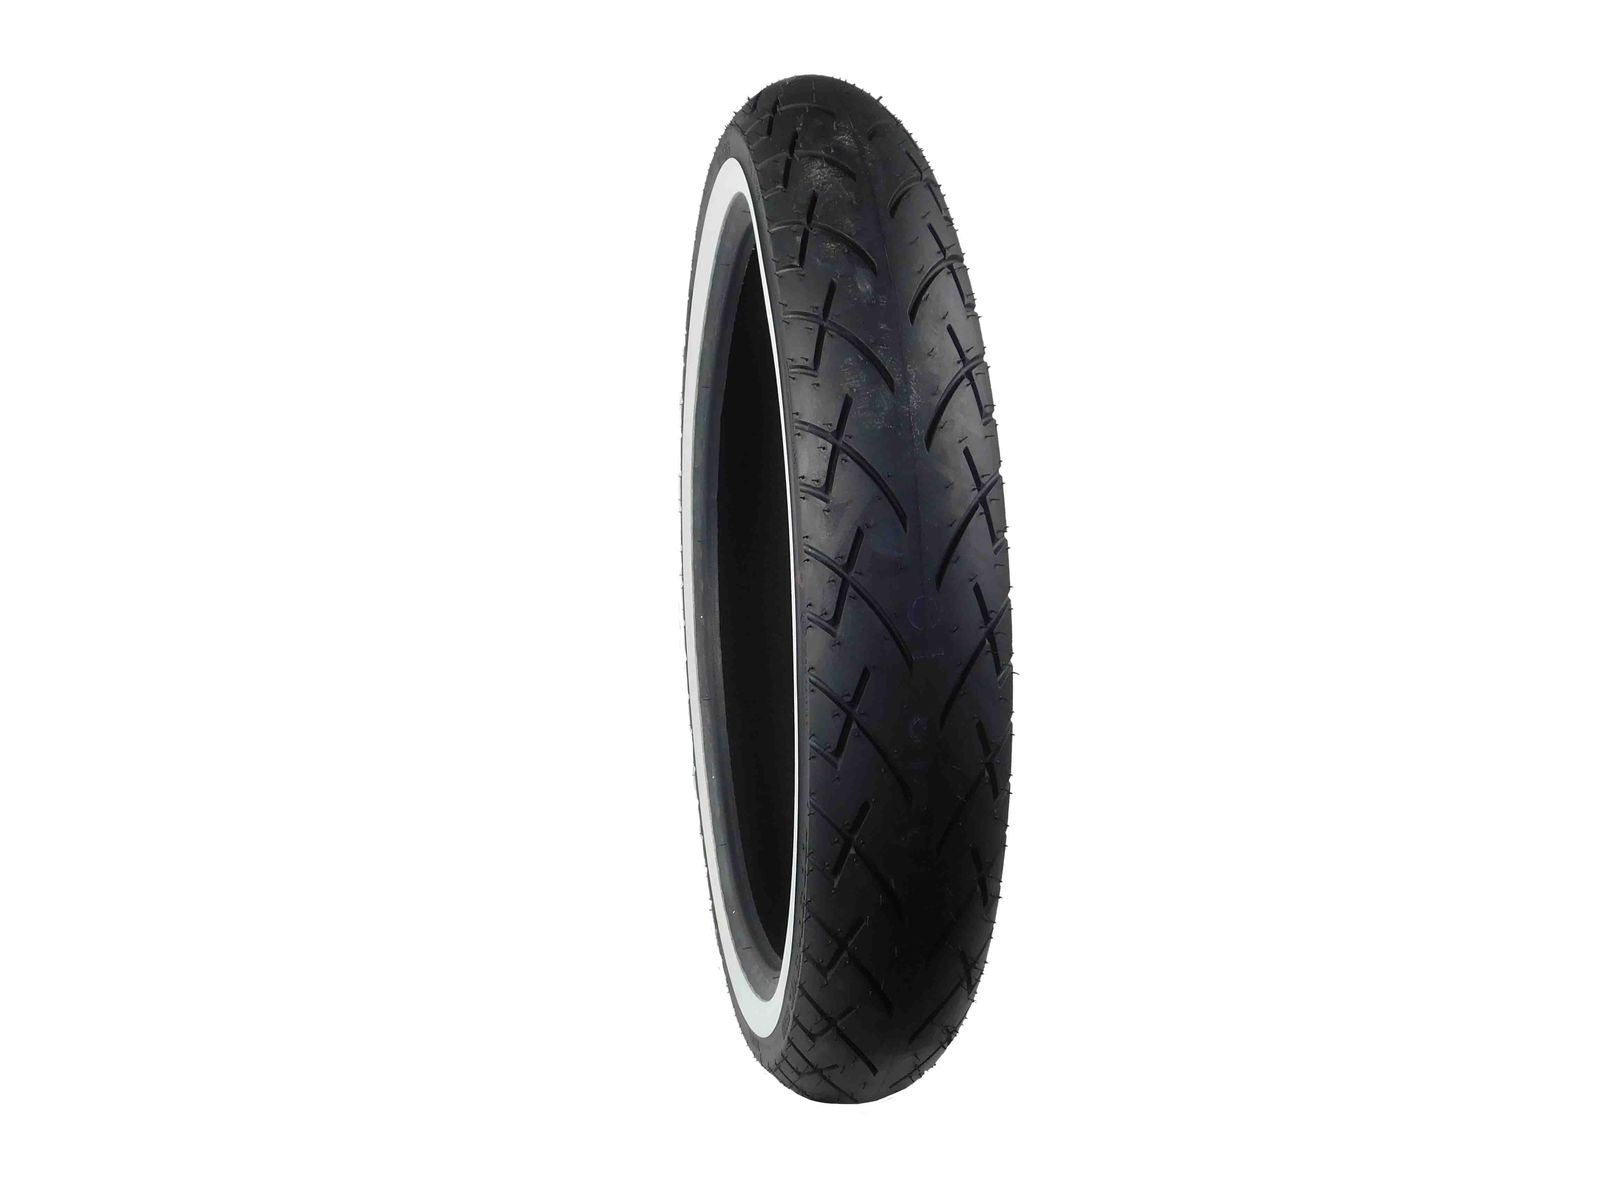 Full-Bore-100-90-19-Front-170-80-15-Rear-White-Wall-Motorcycle-Tires-image-2